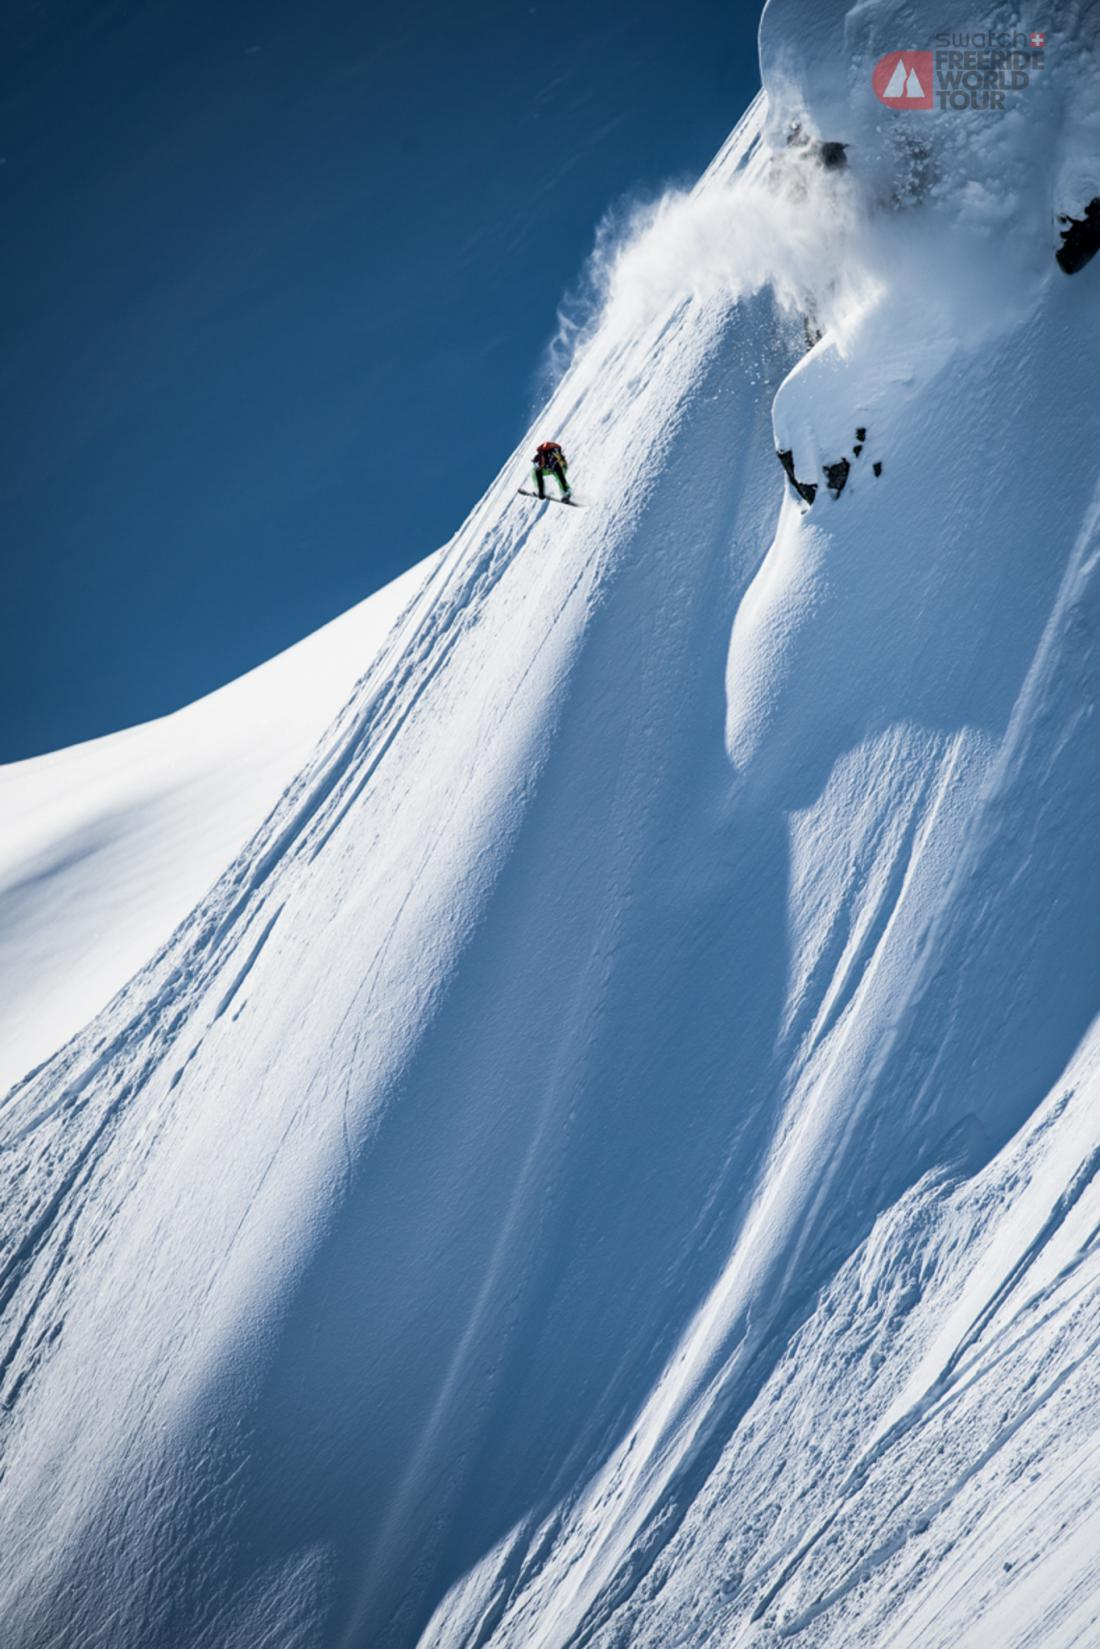 As the snow begins to fall across the Northern Hemisphere, athletes across the world are preparing for another season of exciting action on the prestigious freeride tour. The 2016 edition of the SWATCH FREERIDE WORLD TOUR is destined to be one for the history books as it will host the most talented freeriders on the planet competing on legendary venues across the world for a total prize purse of 467,000 USD. With a total of 62 athletes representing 14 countries, this diverse assembly freeride athletes is composed of 27 male skiers, 14 male snowboarders, 14 female skiers, and 7 female snowboarders. Some of the most recognized names in their respective disciplines will face-off during the five competition stops over the 2016 season. These finely tuned athletes will test their limits after putting in countless hours of physical and mental preparation over the summer months. Athletes will attempt to secure their name in freeride history as they push the limits of the sport on the road to the Bec des Rosses in Verbier, Switzerland. As the sport of freeride grows by leaps and bounds every year, the SWATCH FREERIDE WORLD TOUR is proud to welcome Peak Performance as the Outerwear Partner for the tour this season. Founded in Åre, Sweden in 1986, Peak Performance develops gear as a result of an organic process marrying function with fashion. - See more at: http://freerideworldtour.com/news/freeride-world-tour-2016-countdown-running#sthash.9Mlrkvbc.dpuf